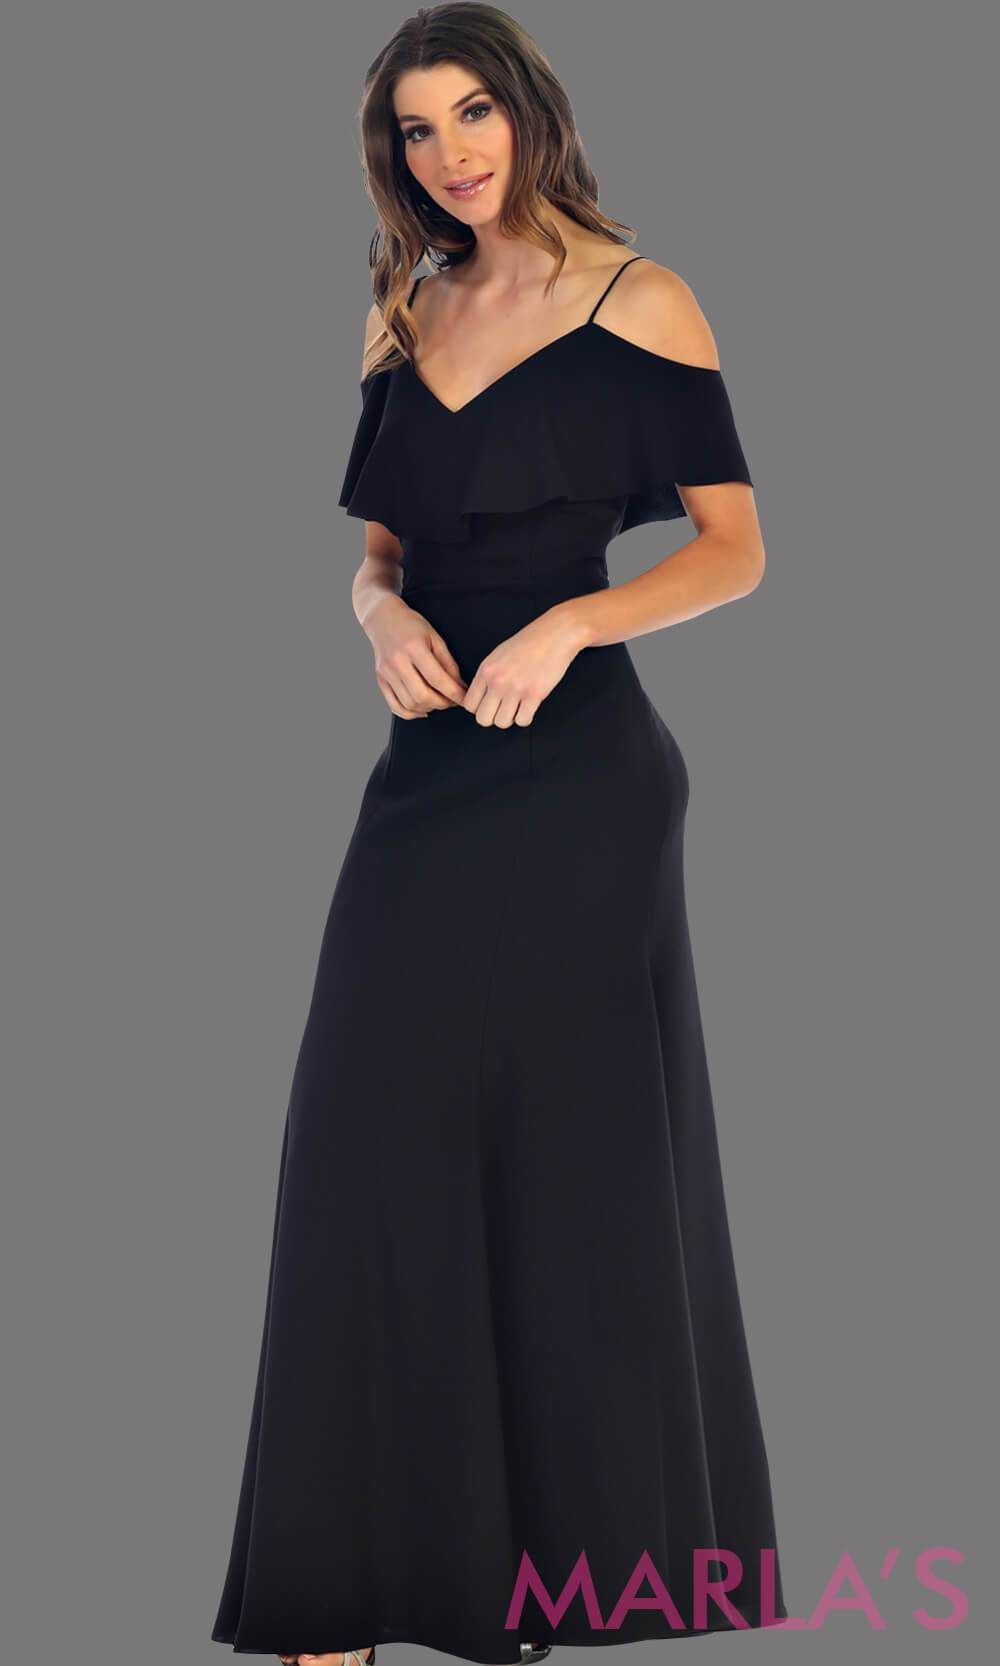 8d349f3306e Long Black flowy dress with cold shoulder. This dress has an empire waist  line and. Visit. January 2019